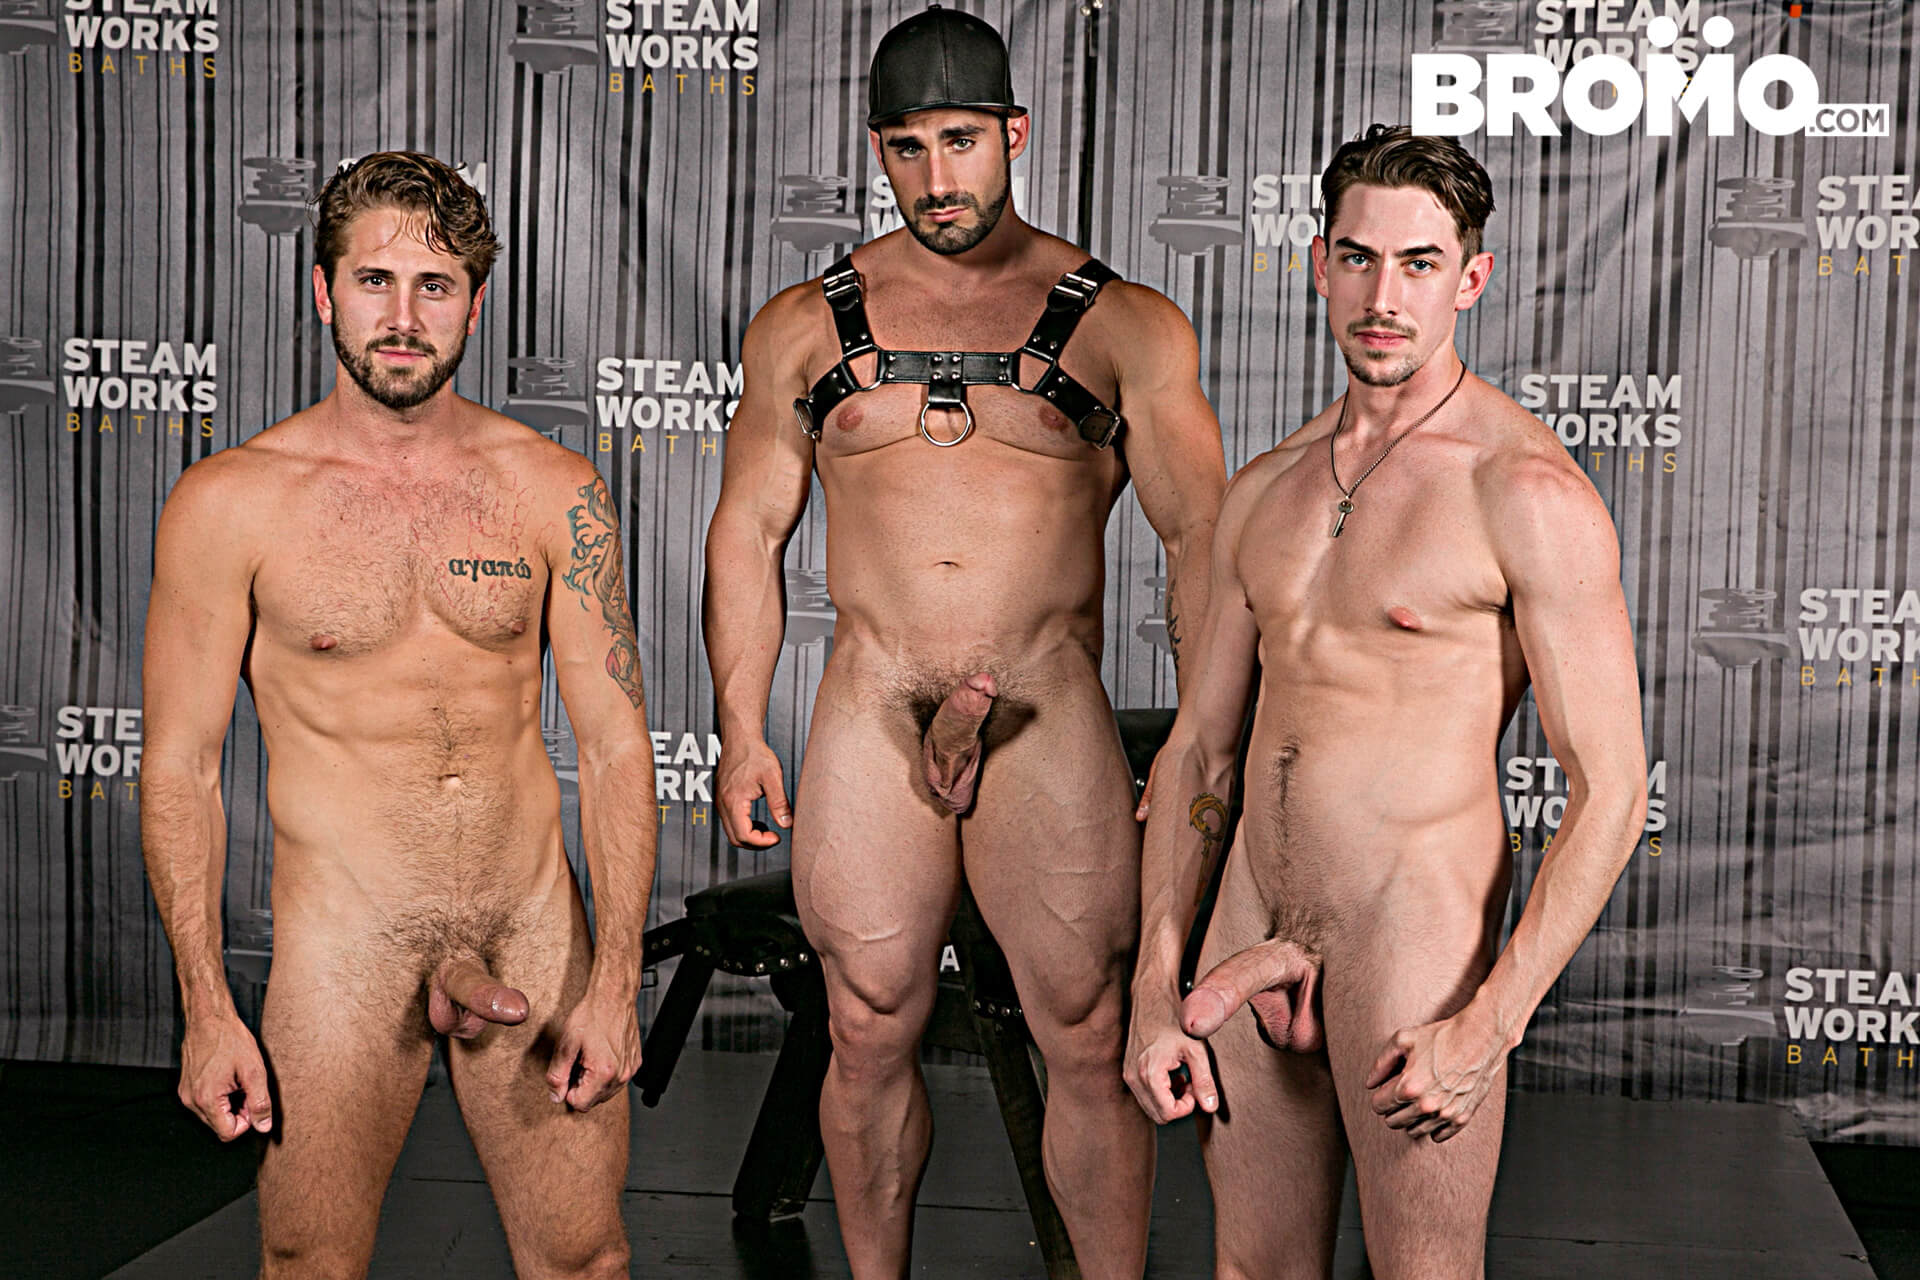 bromo the steam room part 2 jaxton wheeler jack hunter wesley woods gay porn blog image 12